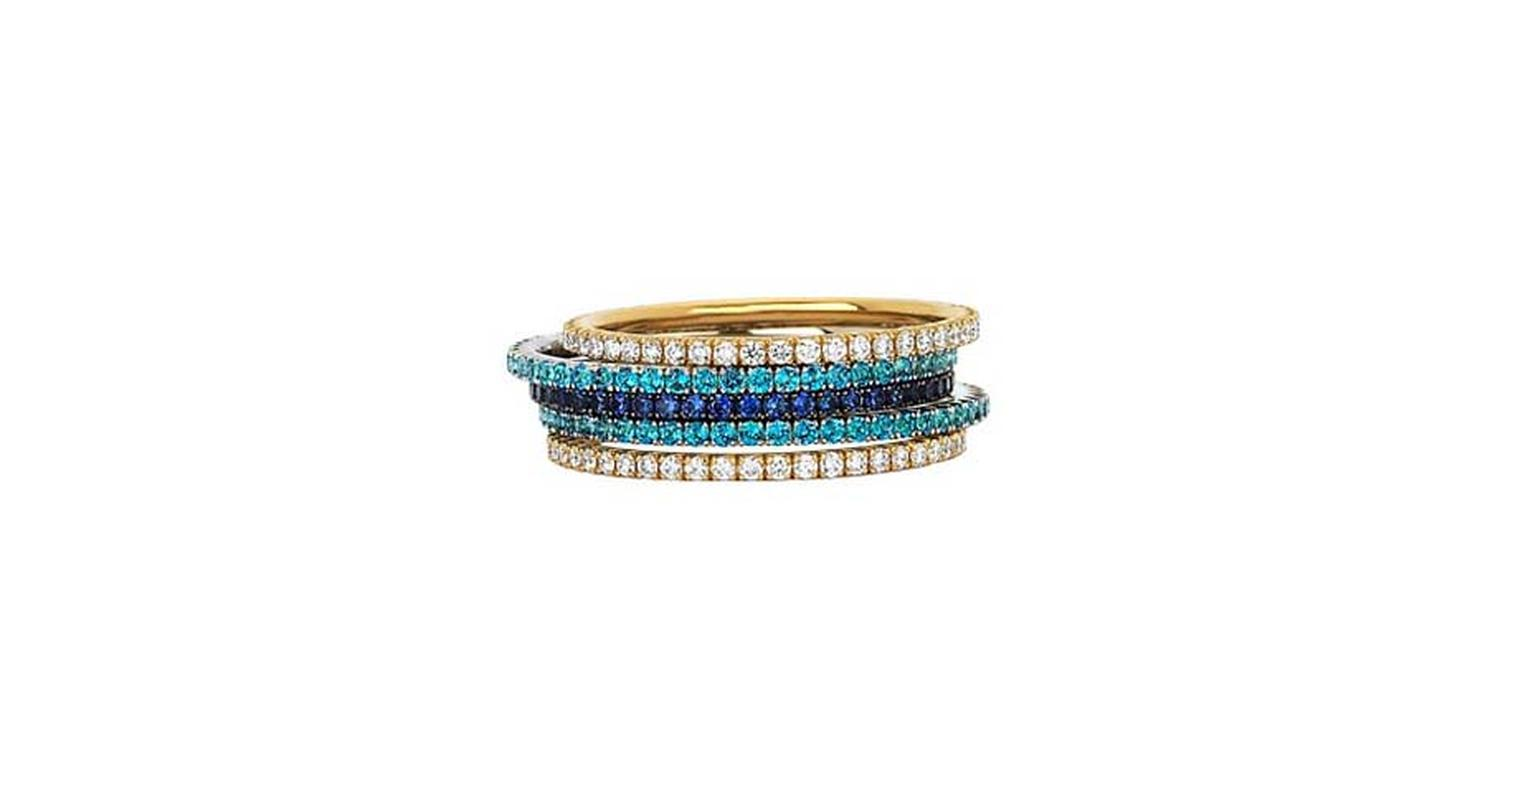 Martin Katz micro-pavé bands with diamonds, sapphires and blue topaz.